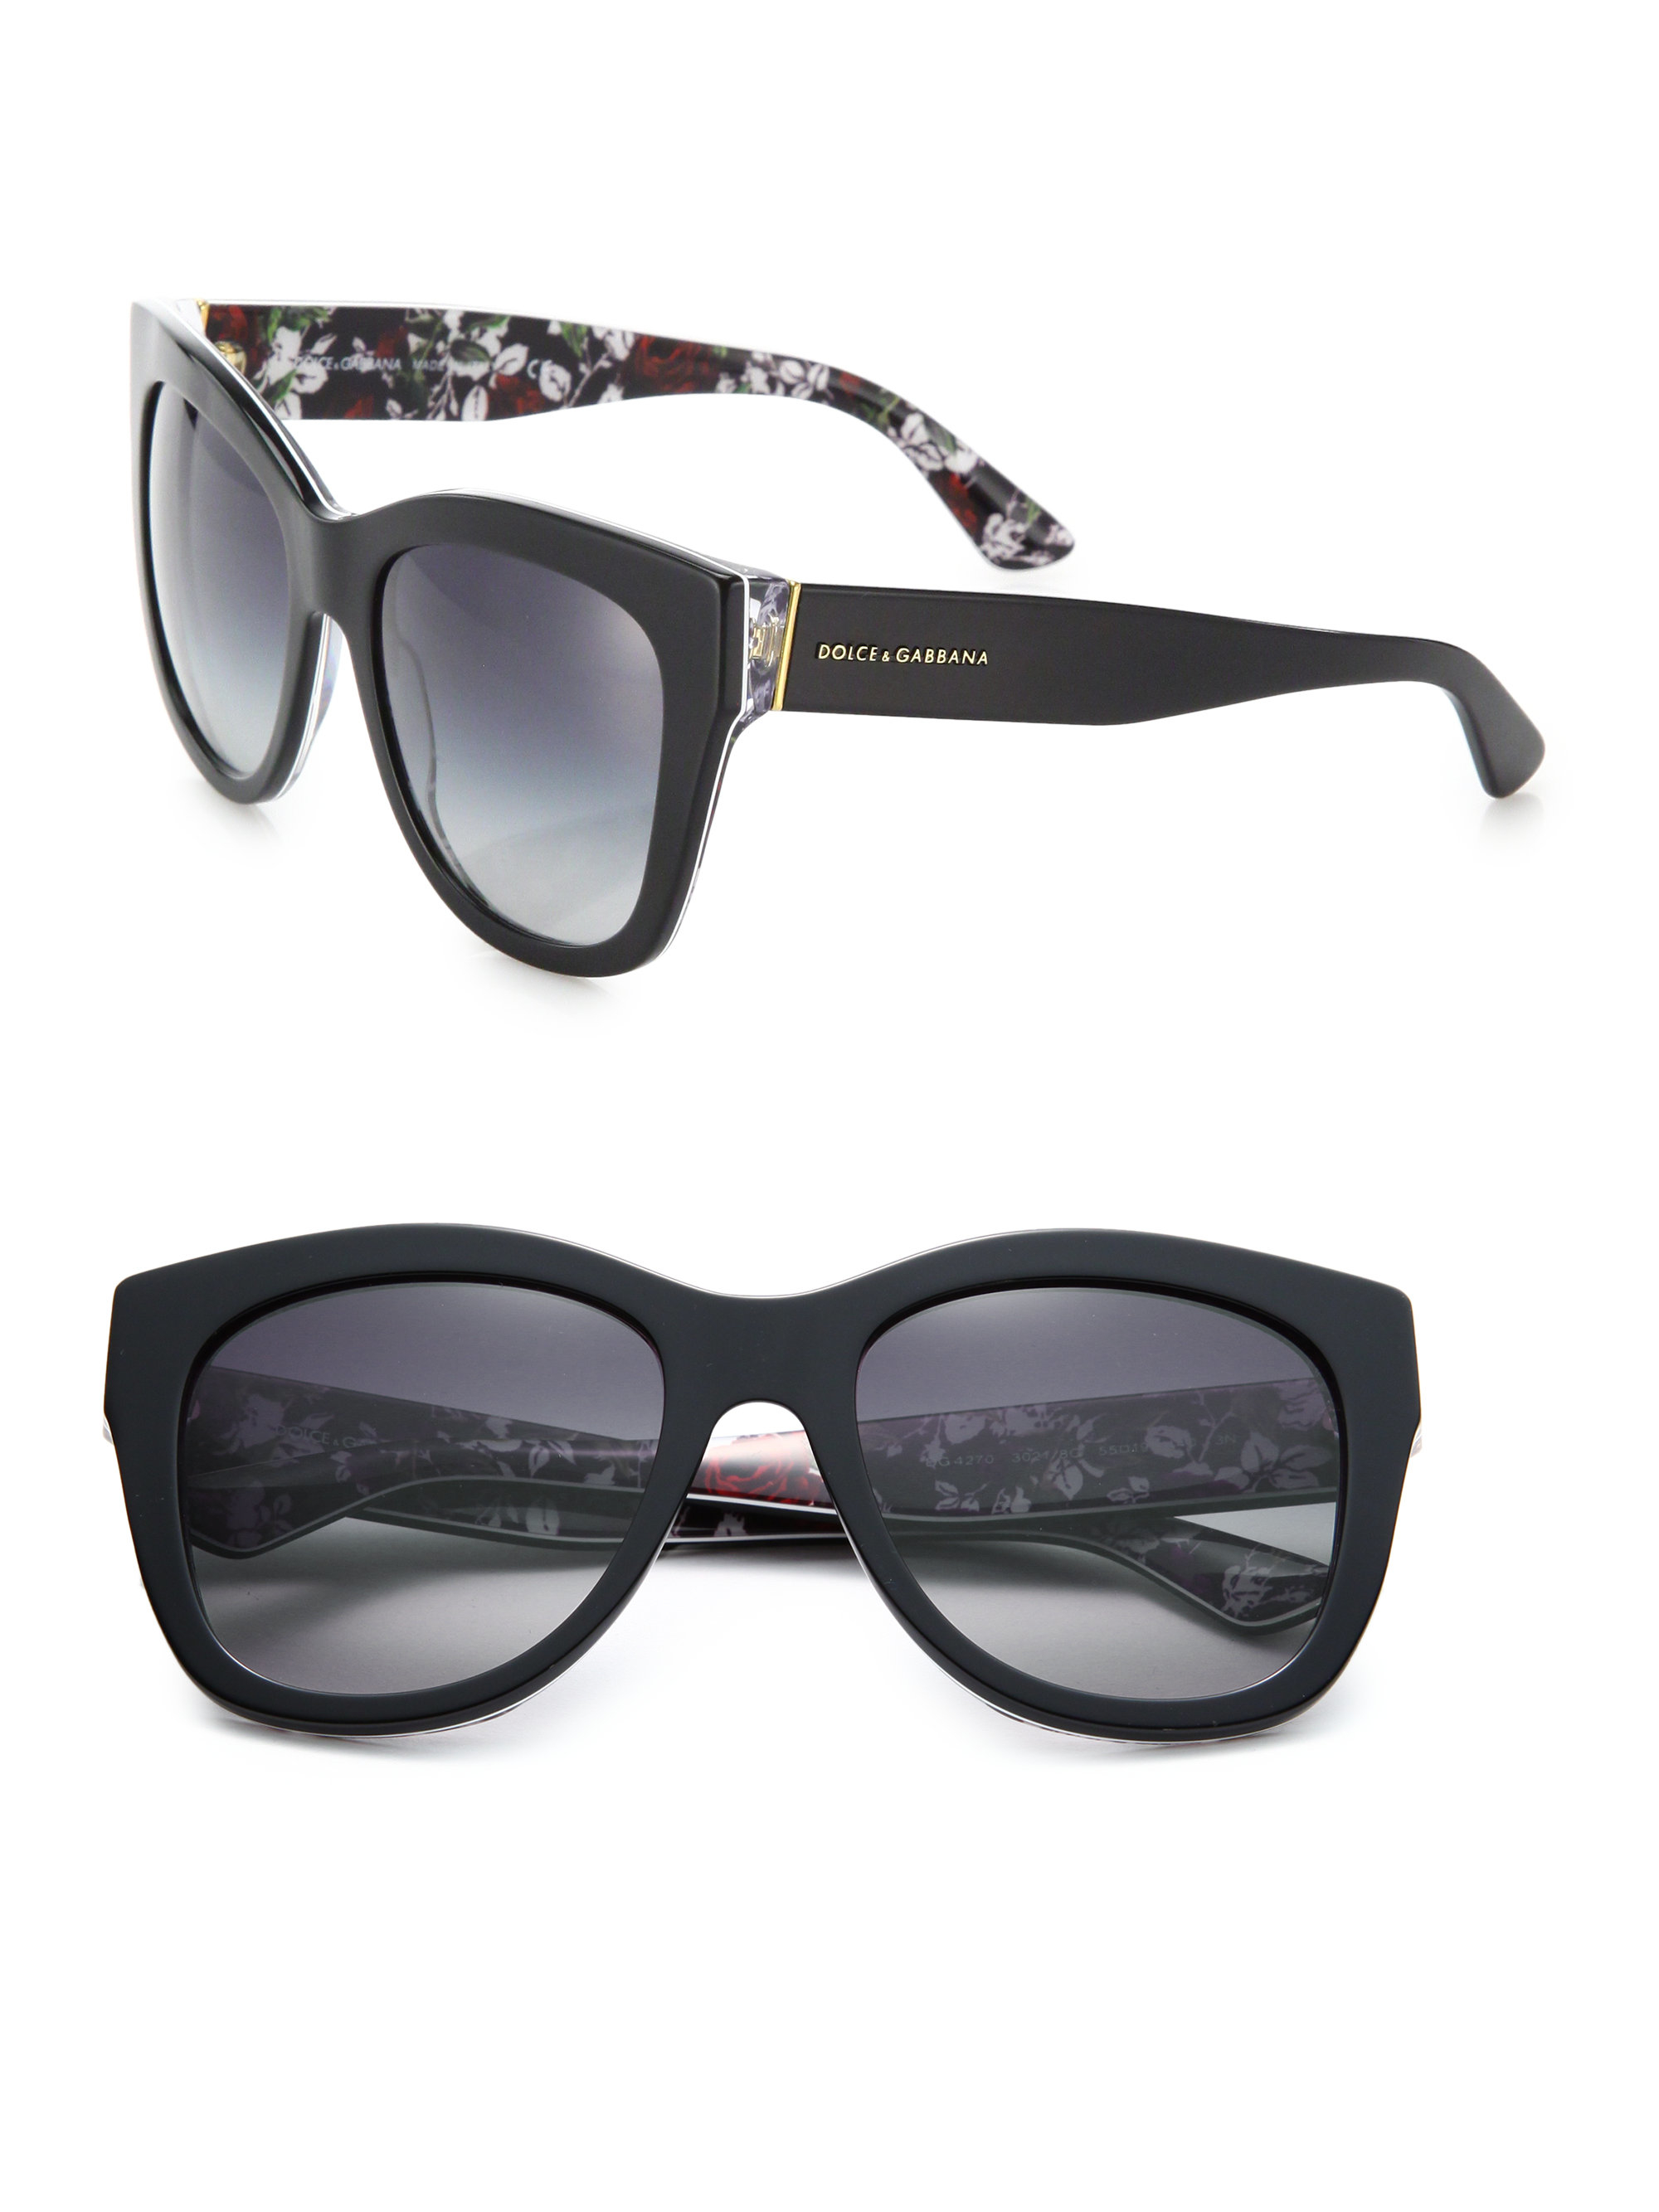 dd236f3d143f4 Dolce   gabbana 55mm Square Floral Acetate Sunglasses in Black